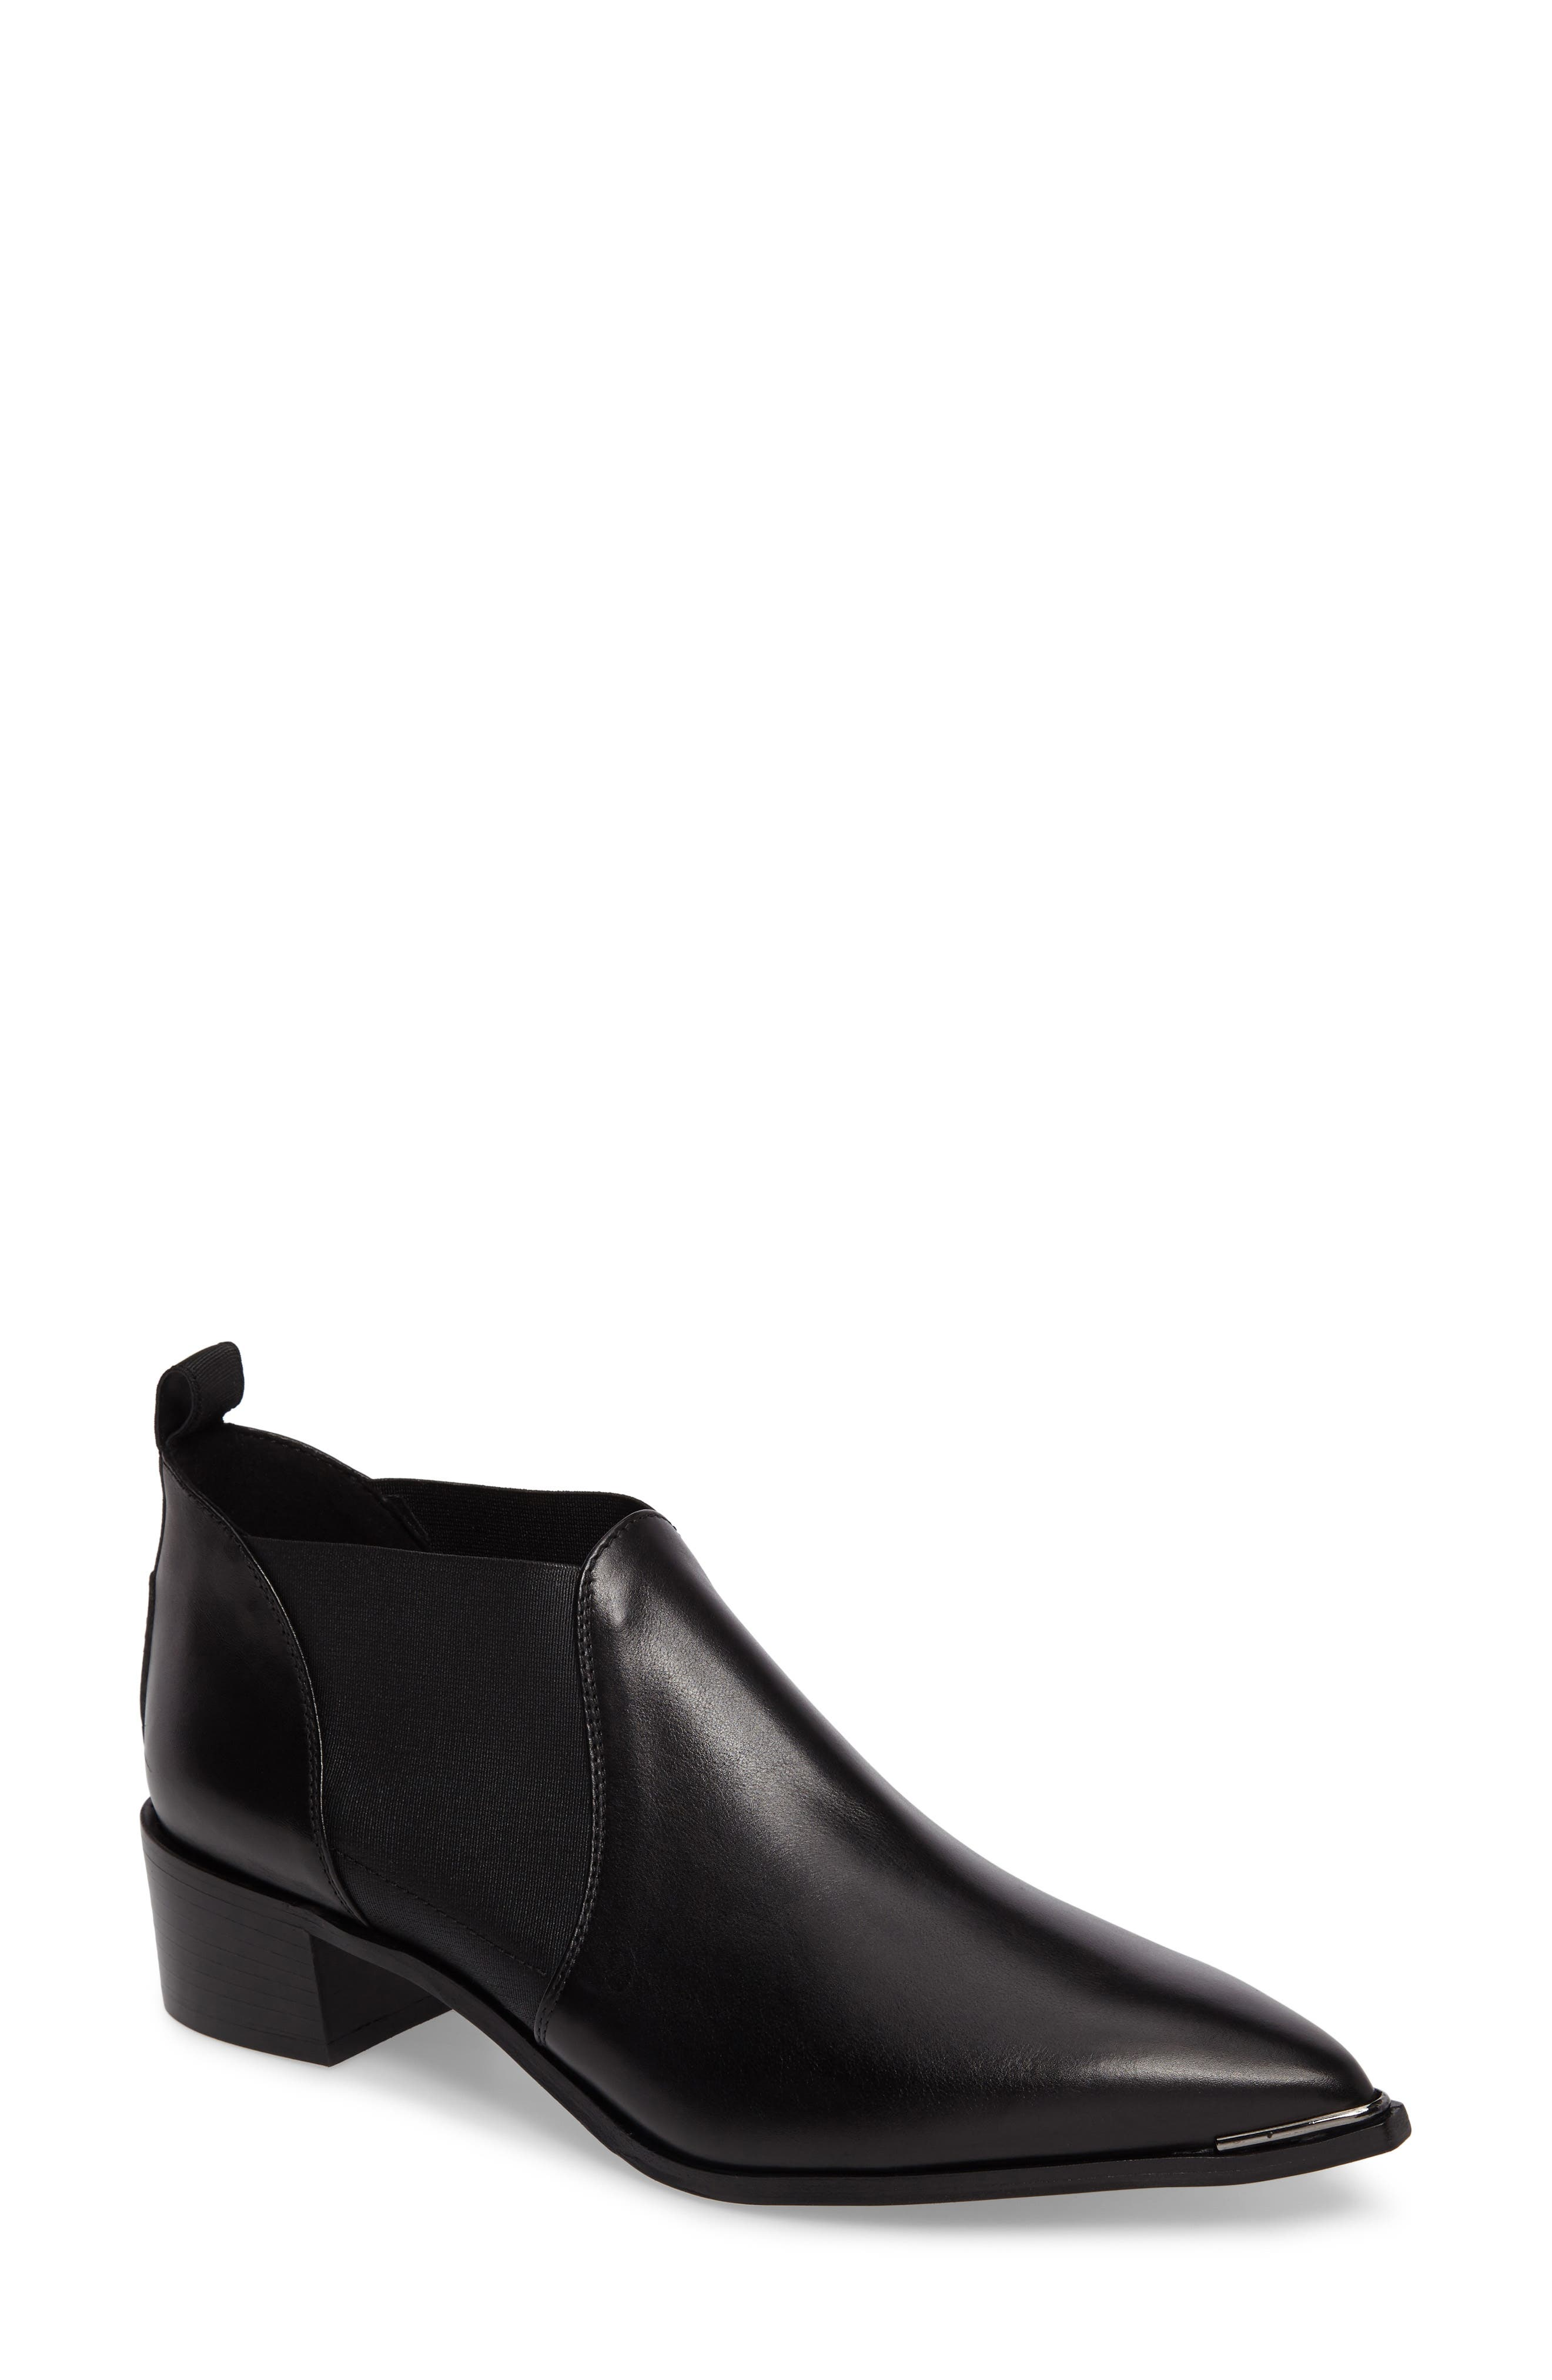 Alternate Image 1 Selected - ACNE Studios Jenny Bootie (Women)